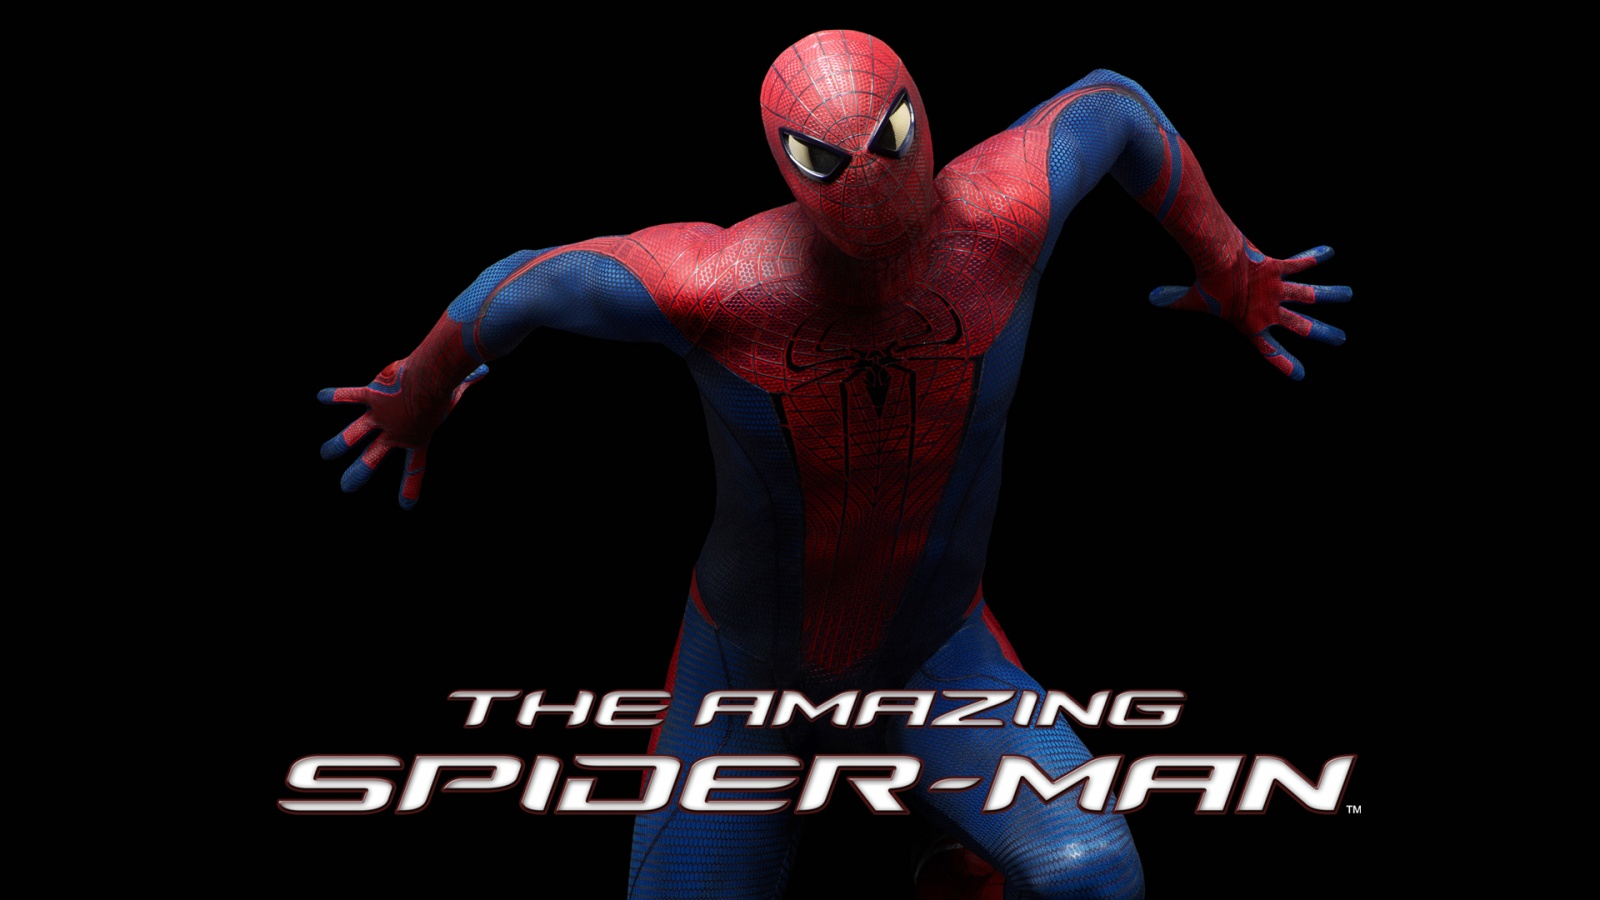 The Amazing Spider Man Movie 2012 Wallpapers In Jpg Format For Free